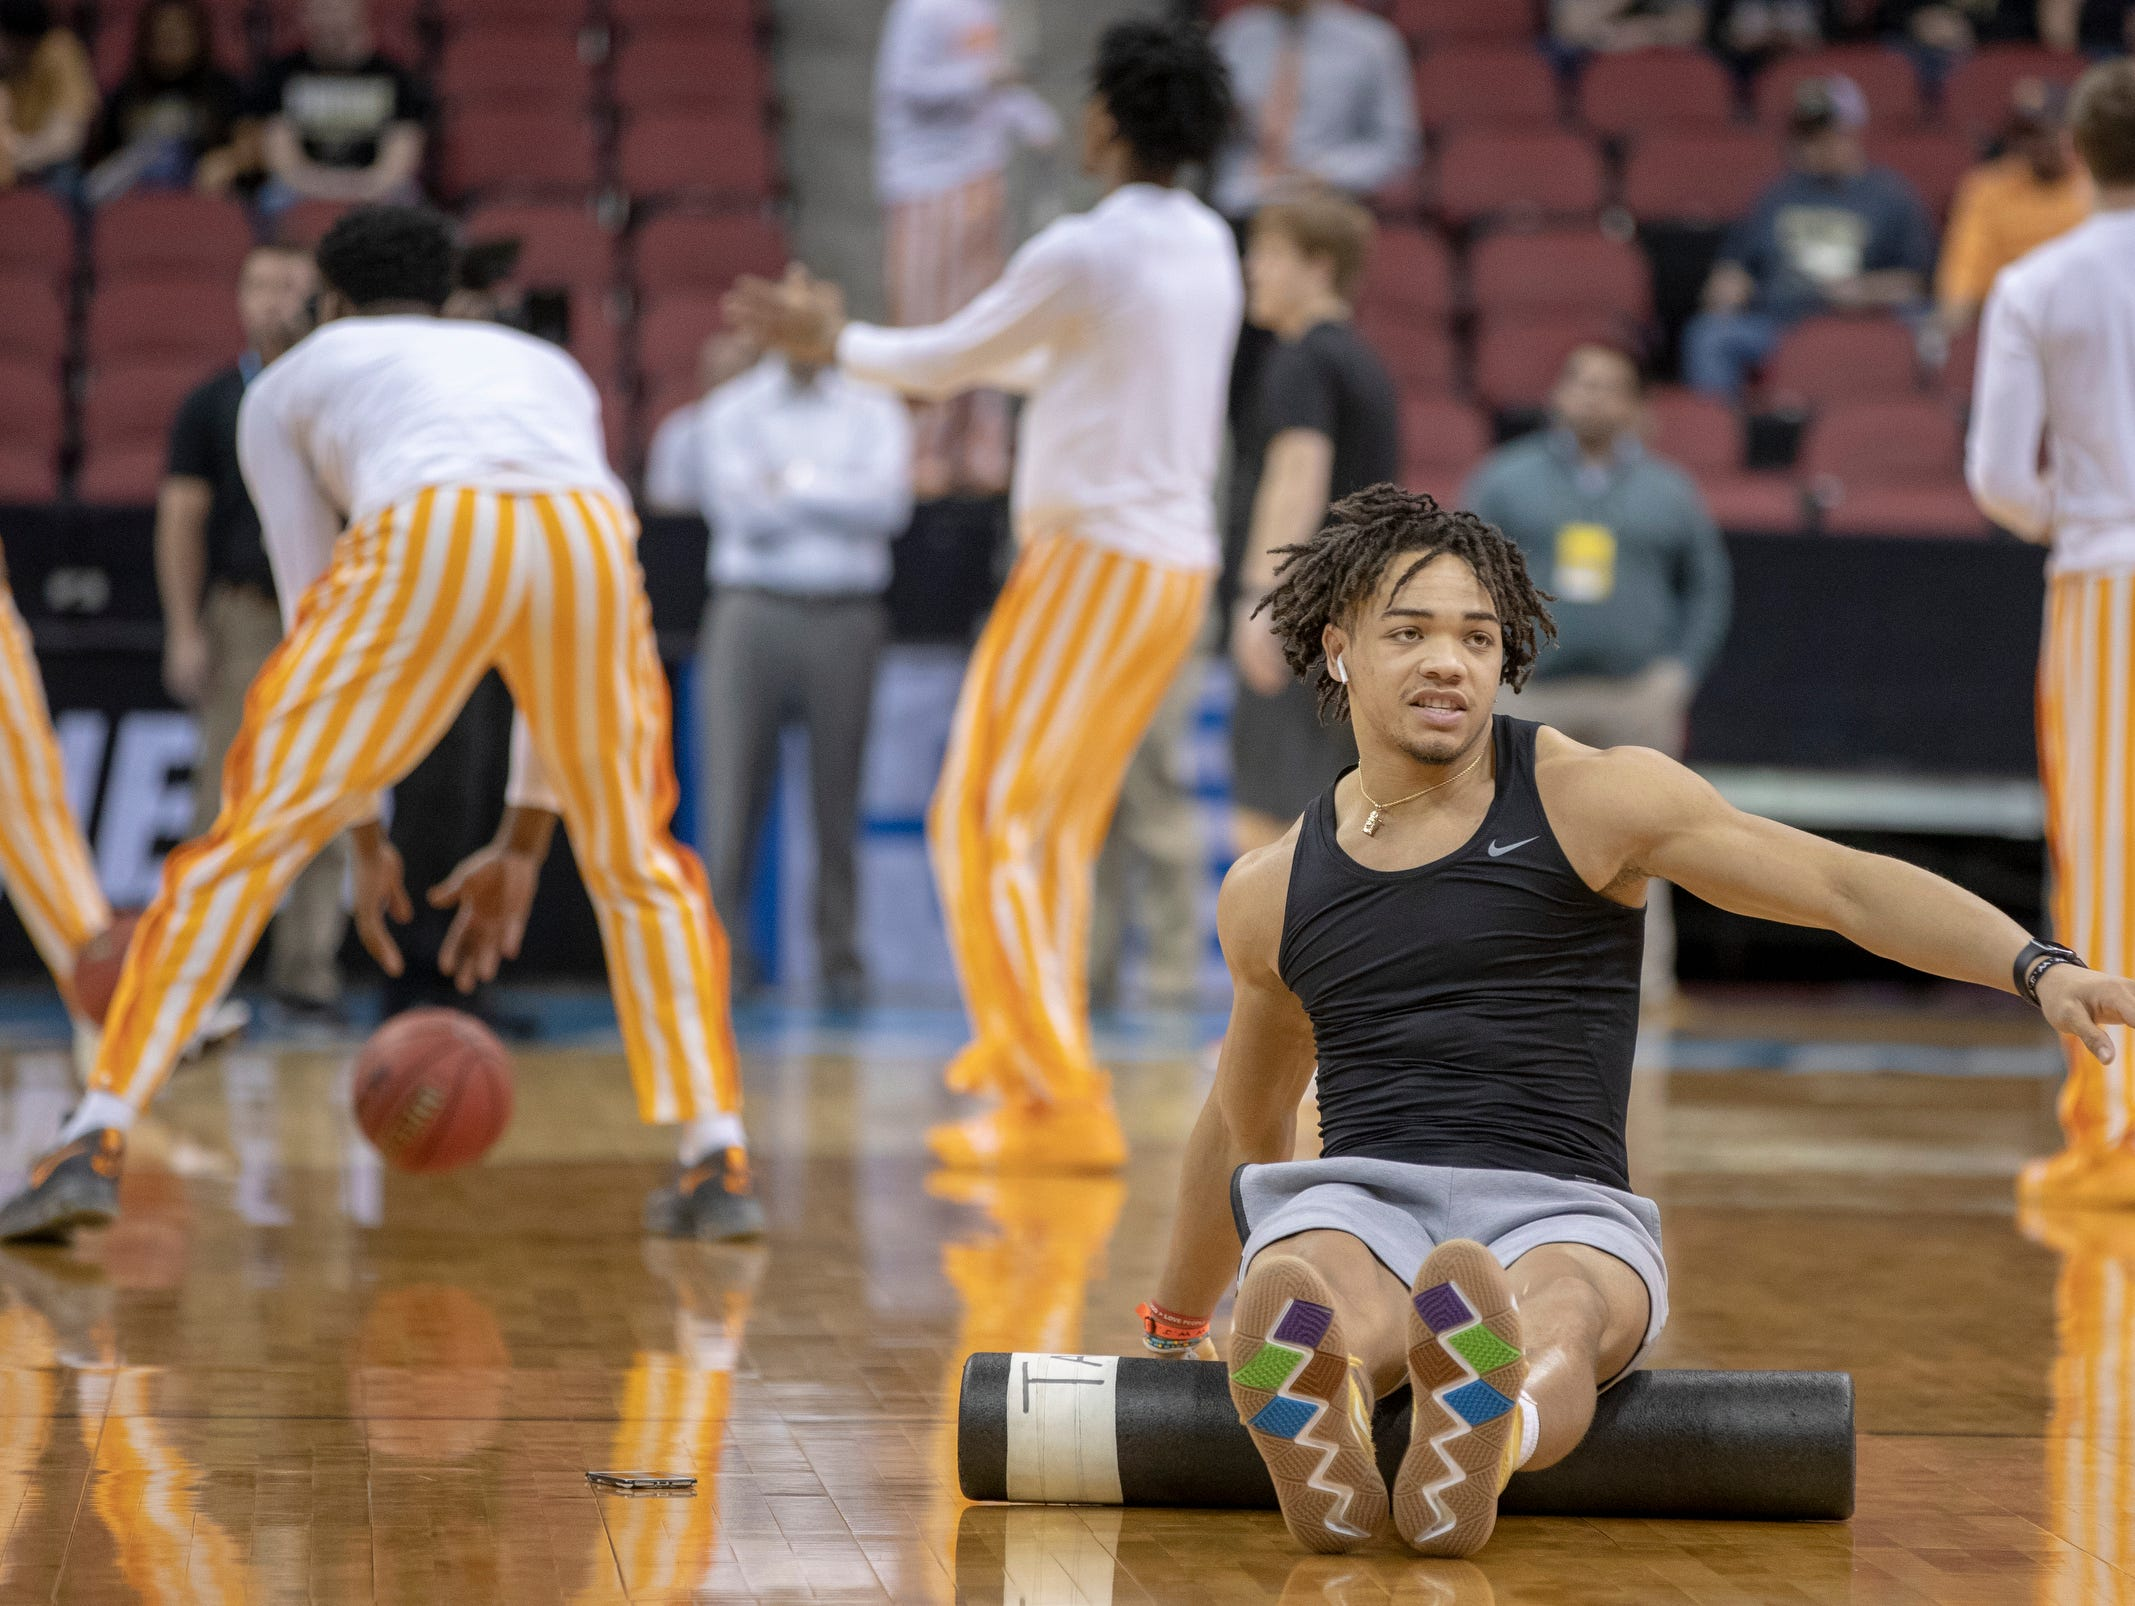 Carsen Edwards, All-American guard for Purdue, gets some stretching in during warmups, NCAA Division 1 Men's Basketball 'Sweet Sixteen' game, KFC Yum Center, Louisville, Thursday, March 28, 2019.